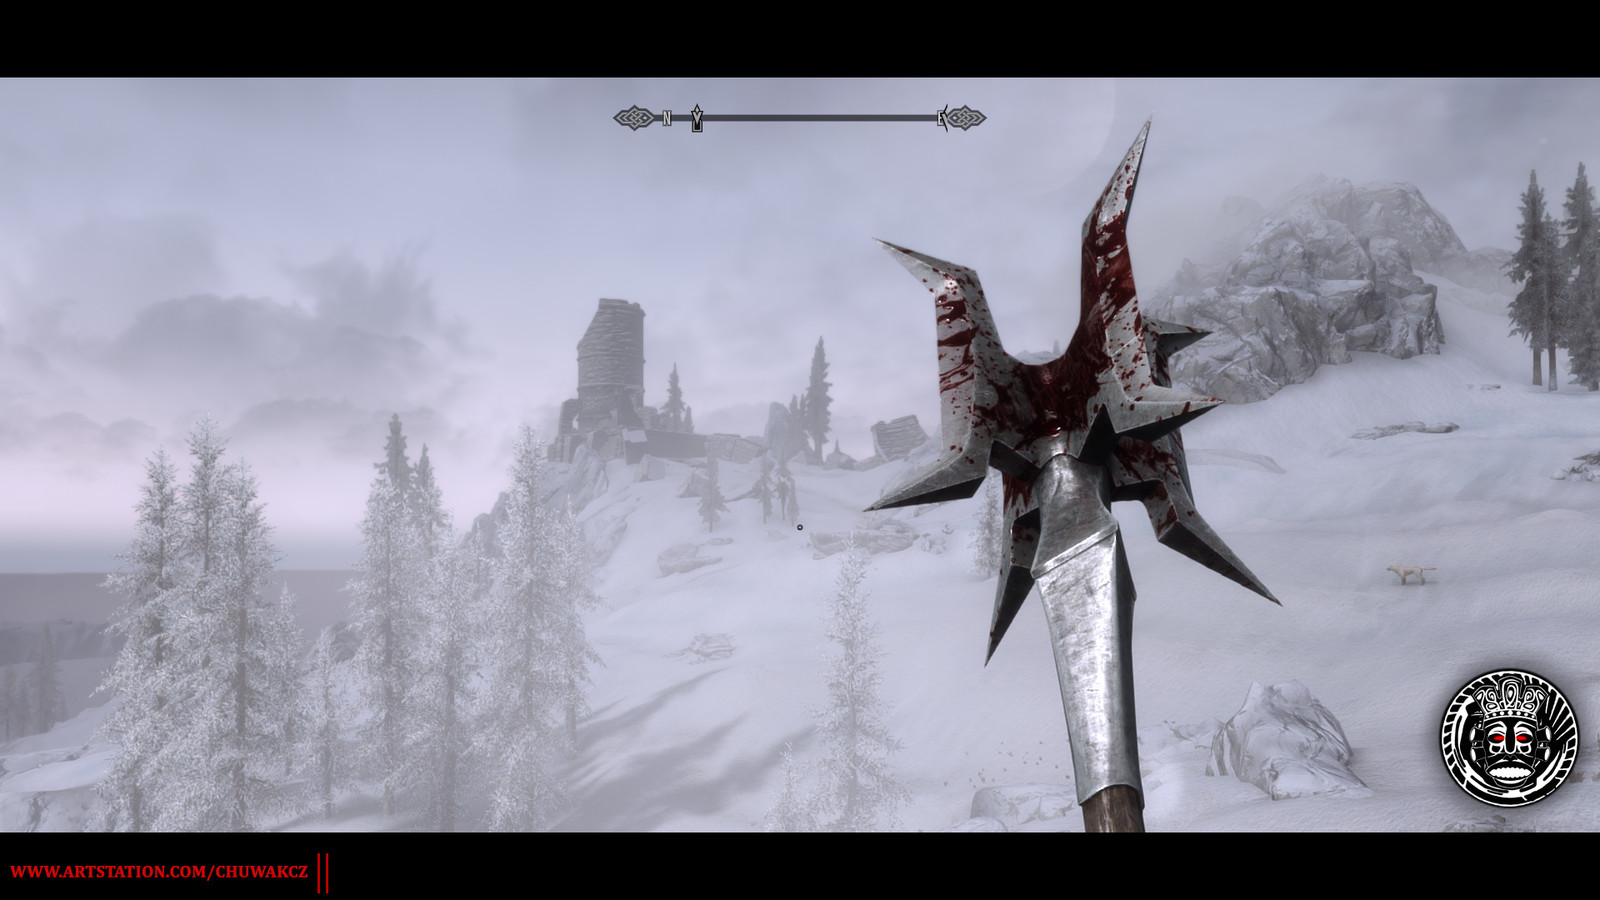 Ingame with ENB